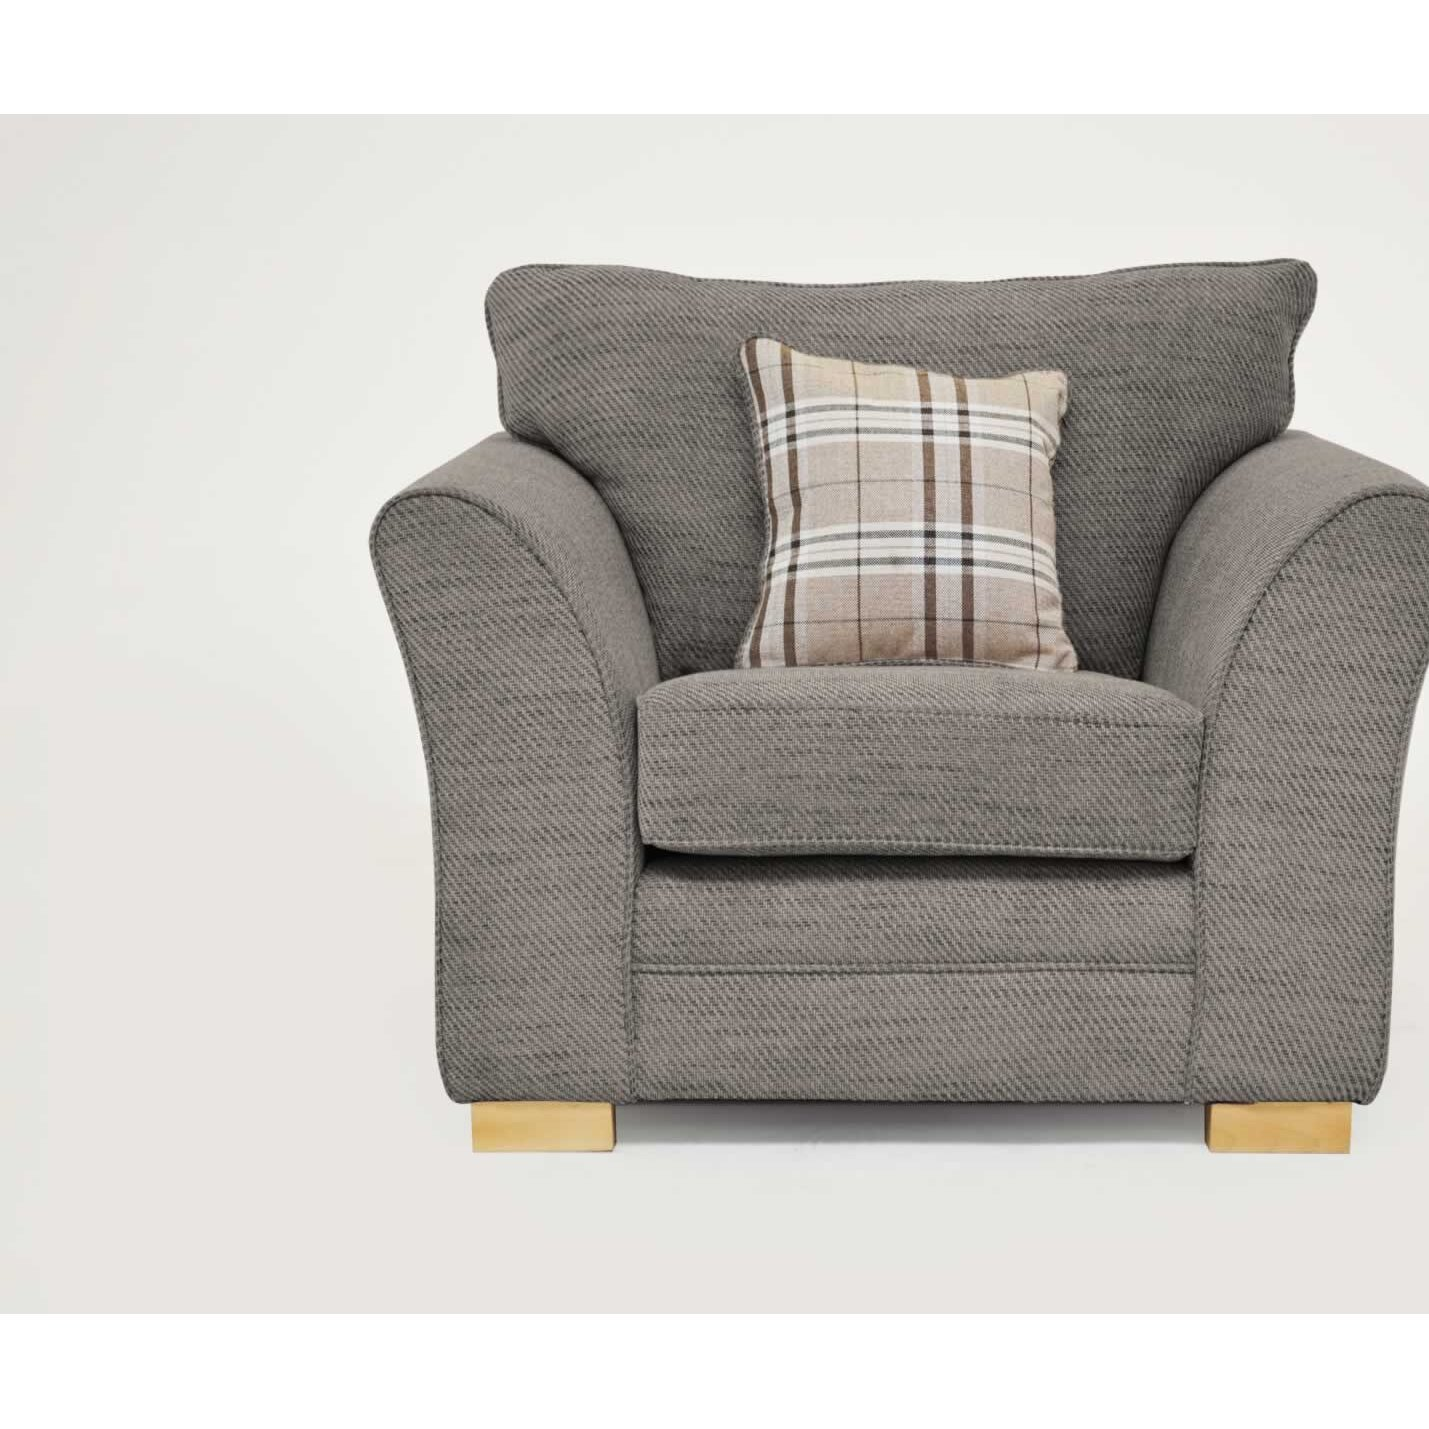 Classicliving sessel greenlawn for Suche sessel